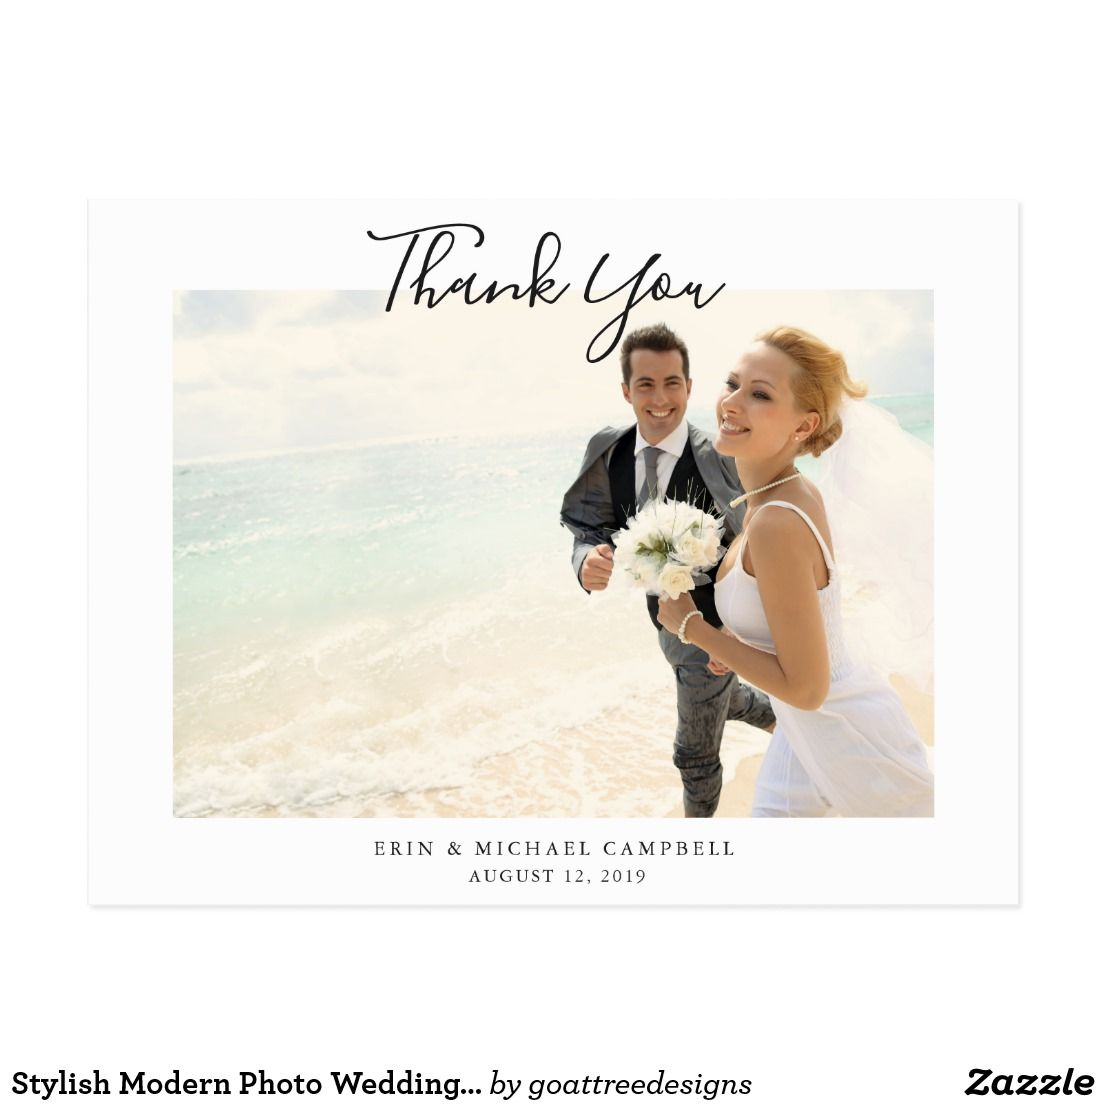 simple elegant and modern wedding thank you postcard template with a white base and minimalist flair with handwriting script thats easy to customize with